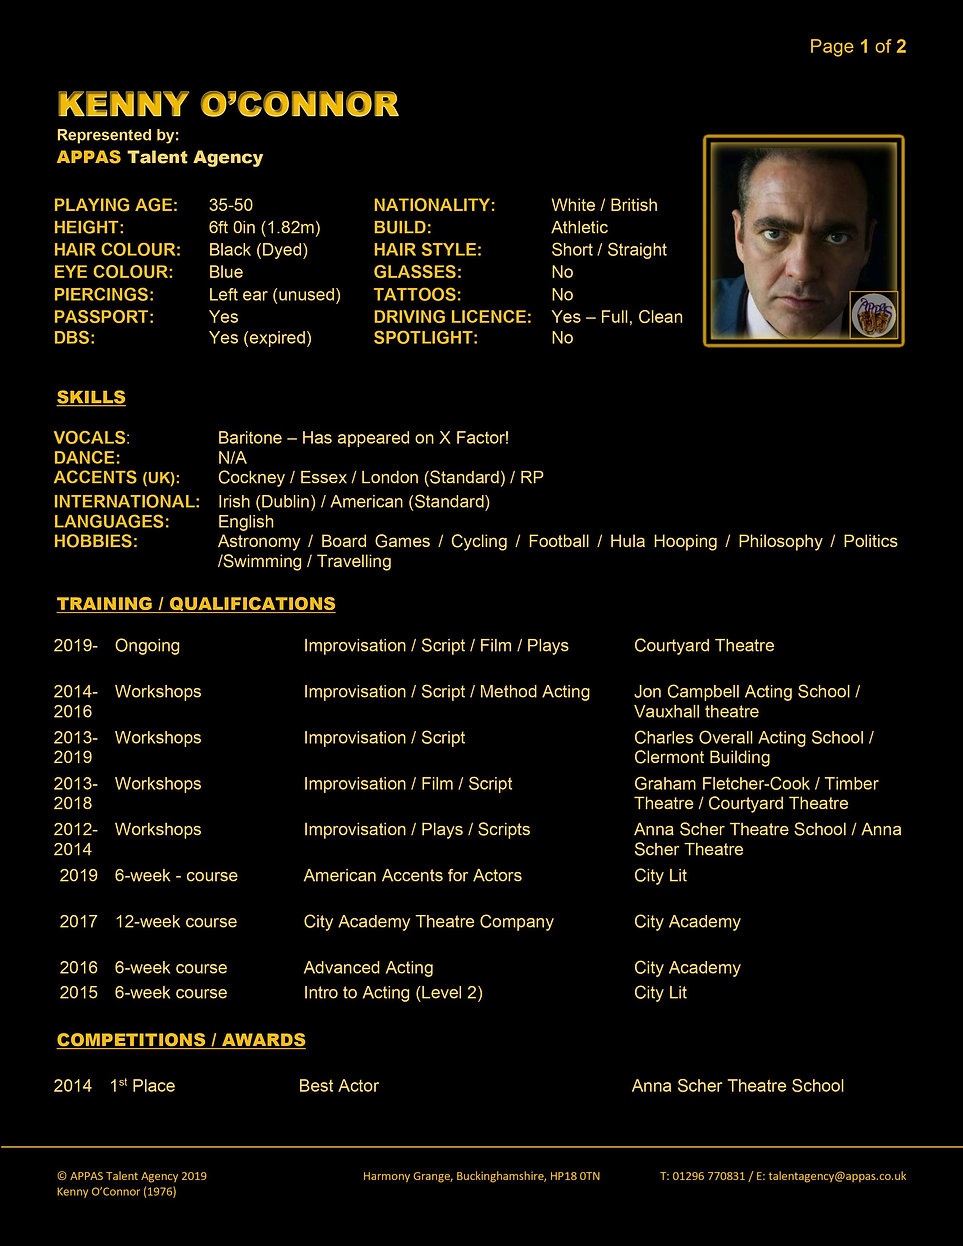 KENNY O'CONNOR WEB CV (MAR 2020) 1.jpg